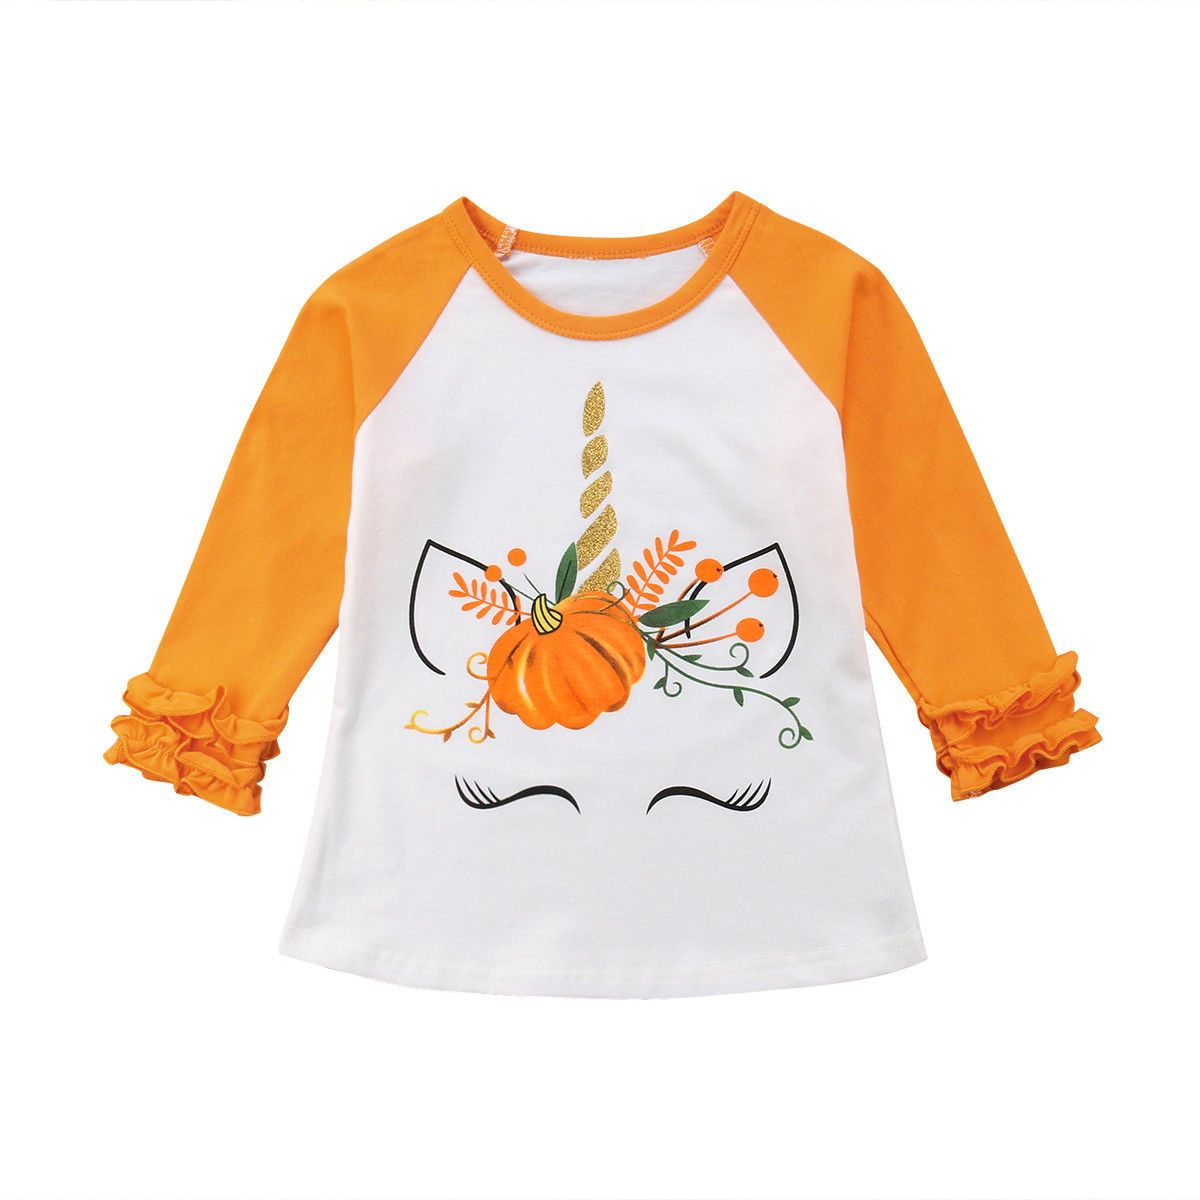 dabb5dffd13 Buy Newborn Baby Girls Halloween Unicorn Shirt at familypops.com! Free  shipping to 185 countries. 45 days money back guarantee.